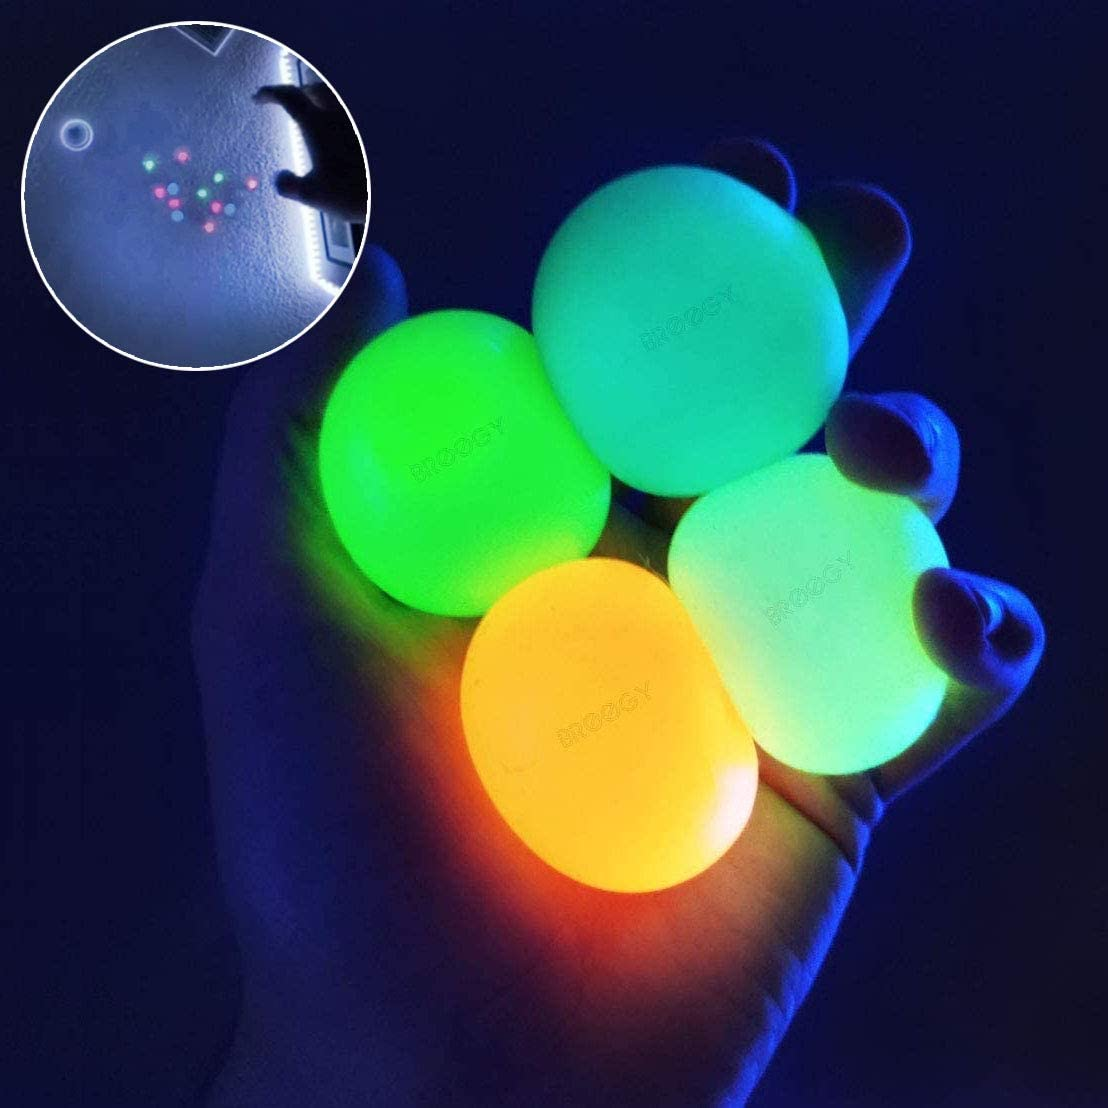 BROOGY Sticky Balls for Ceiling Sticky Balls That GETS Stuck ON The ROOF Fidget Balls Sticky Balls Glow That Stick to The Ceiling Sticky Balls Glow in The Dark Sticky Stress Balls (4PCS)